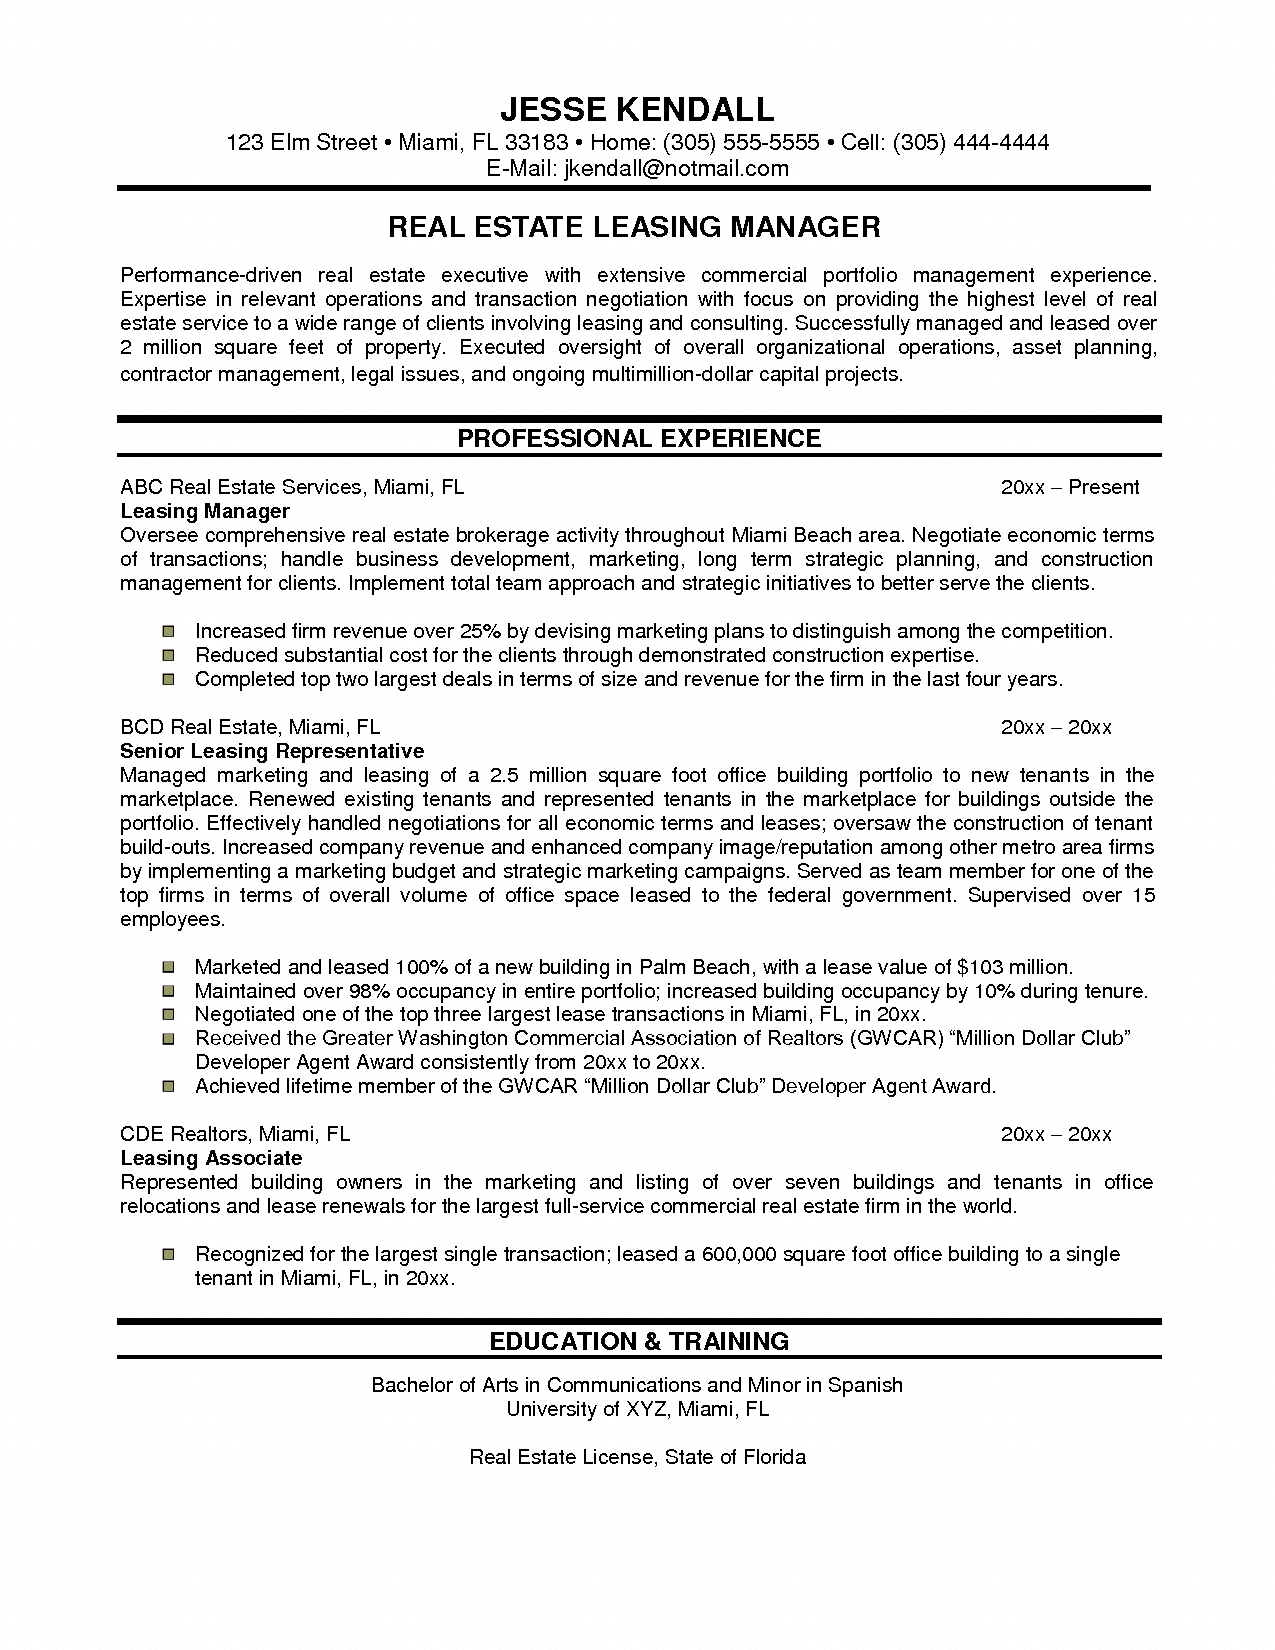 real estate commission letter template example-mercial property manager resume samples Building Manager Resume Interested in be ing a building manager Learn about making a building manager 6-k